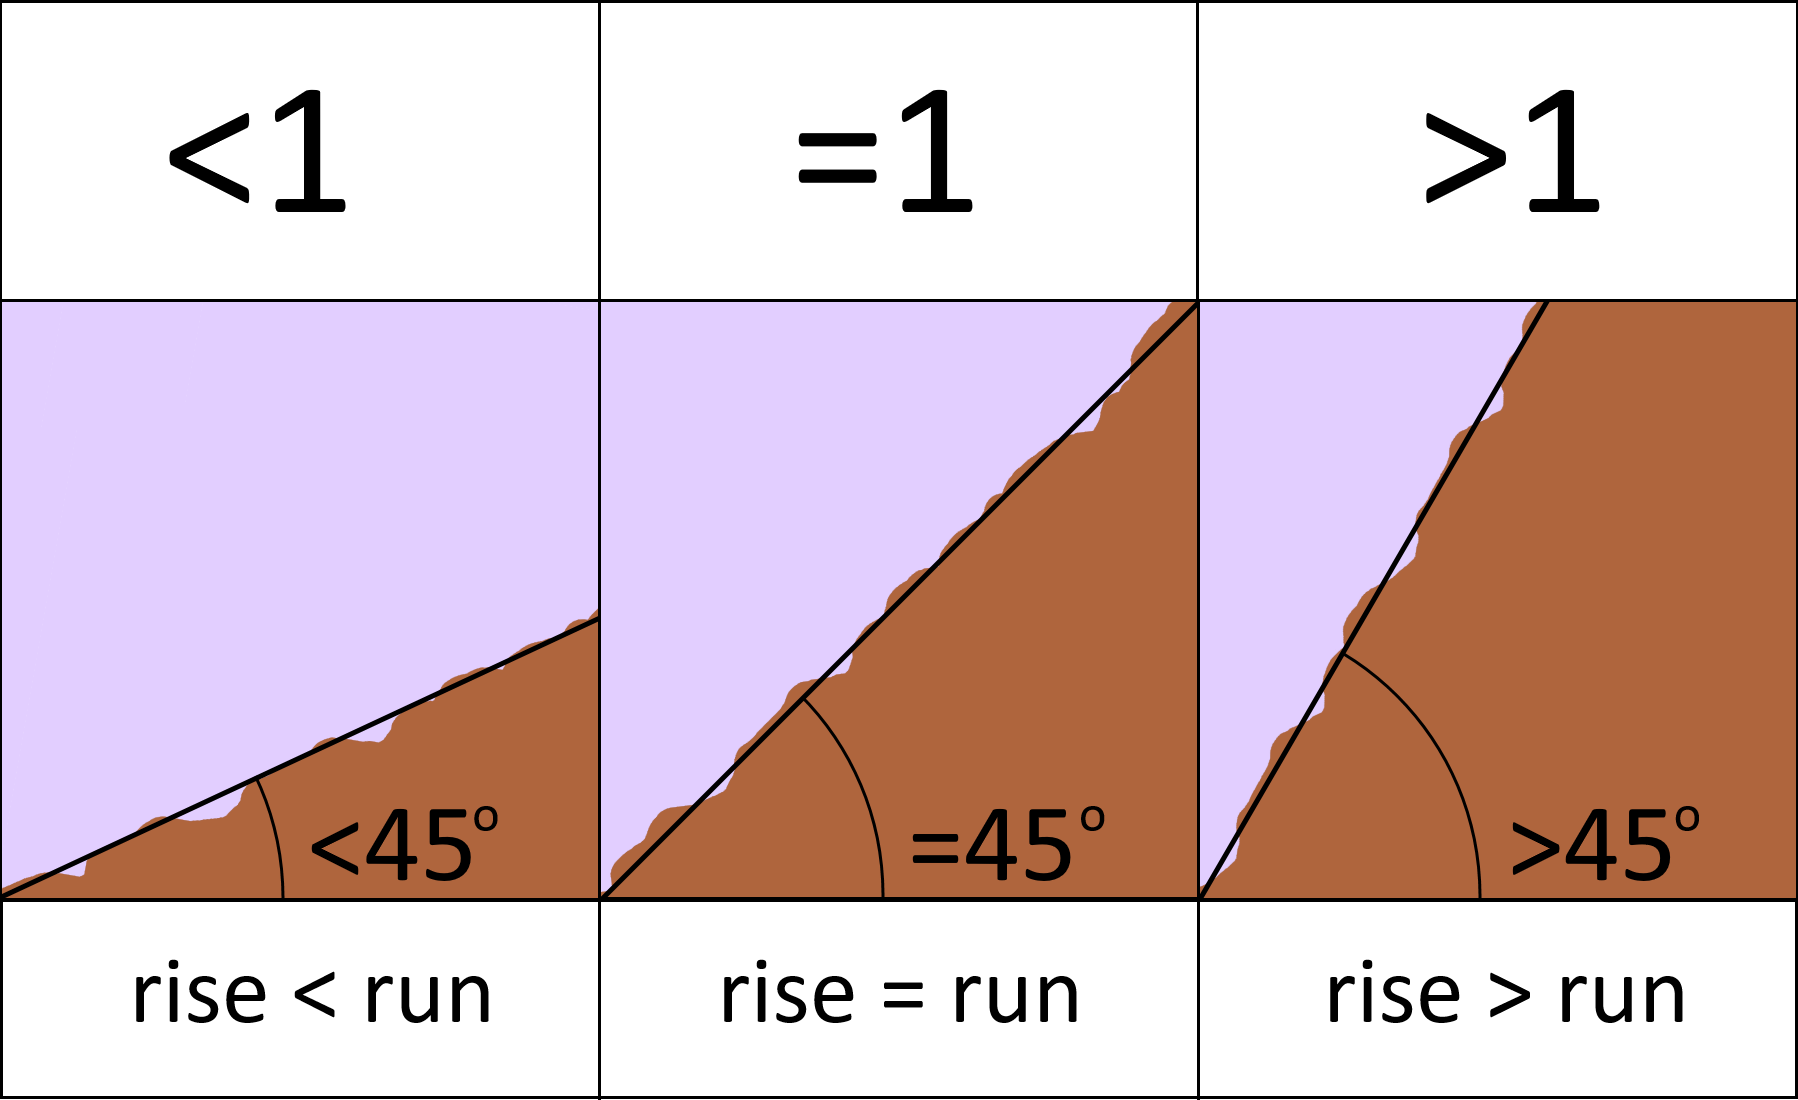 Table showing the relationship of the values of elevation grade to the illustration of each slope steepness